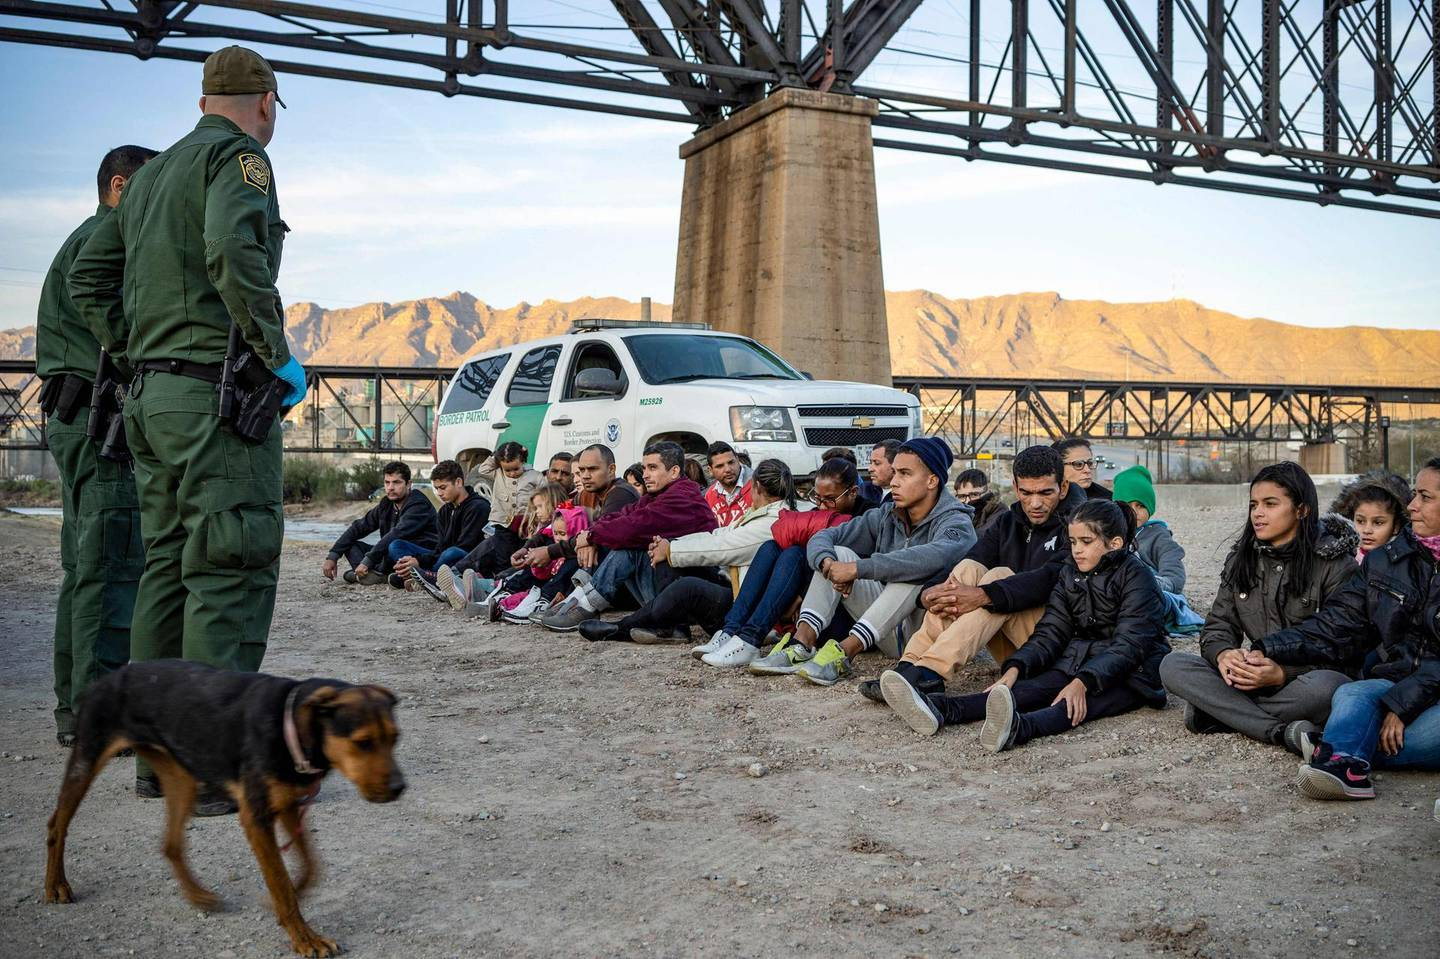 (FILES) In this file photo a group of about 30 Brazilian migrants, who had just crossed the border, sit on the ground near US Border Patrol agents, on the property of Jeff Allen, who used to run a brick factory near Mt. Christo Rey on the US-Mexico border in Sunland Park, New Mexico on March 20, 2019.  The flow of migrants and trade, legal and illegal, across the US-Mexican border will be the focus on March 1, 2021 when President Joe Biden meets with counterpart Andres Manuel Lopez Labrador in a virtual summit. Their meeting comes as reports say the United States faces a new surge of undocumented migrants attempting to enter the country from its southern neighbor, as Biden eases the tough anti-immigration regime of predecessor Donald Trump.  / AFP / Paul Ratje